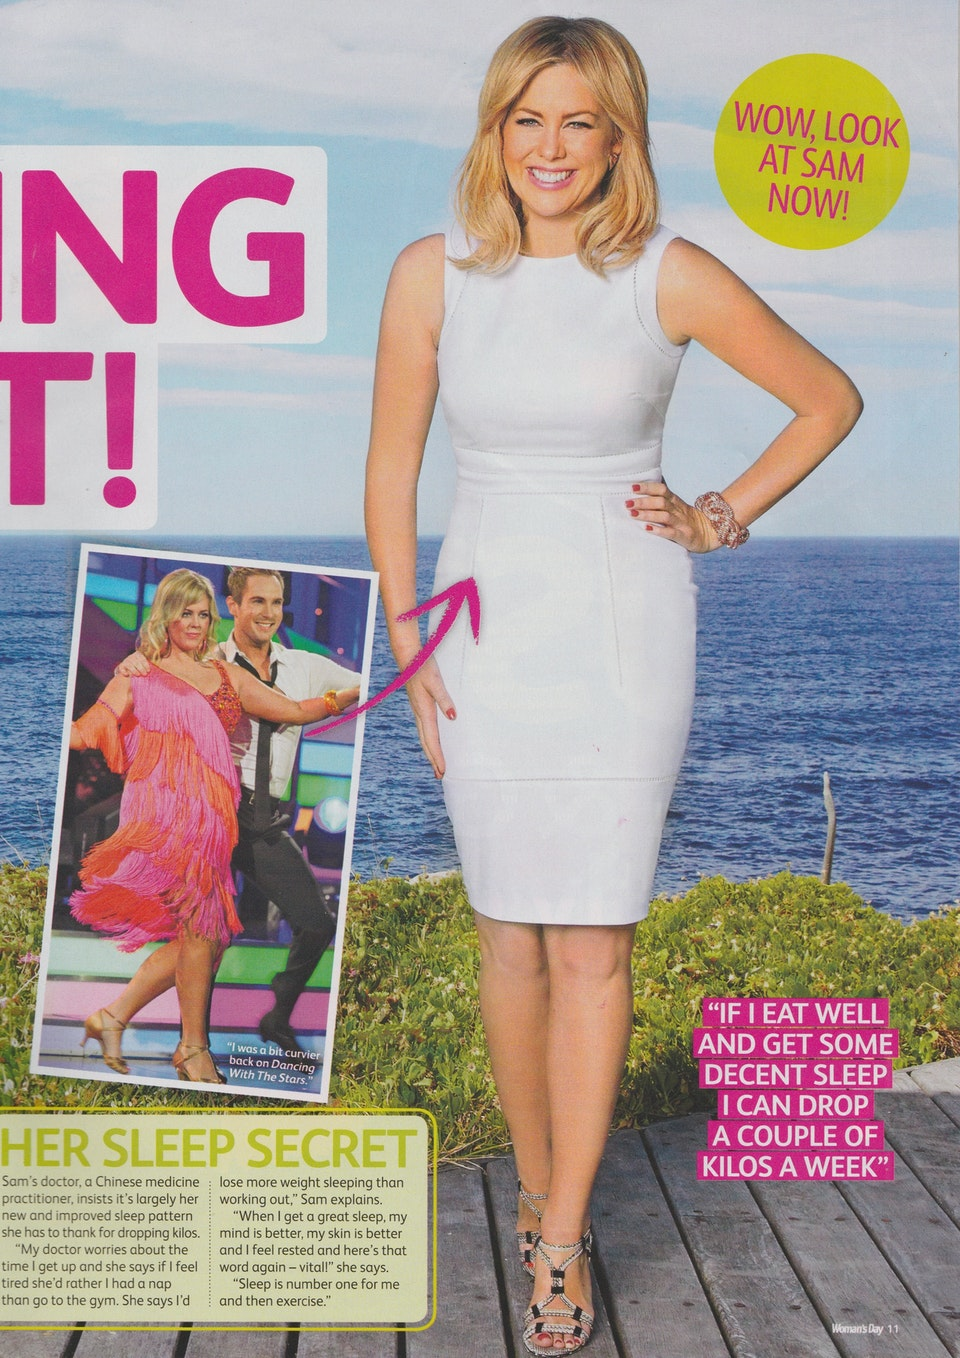 Lucy_Alder_Sophie_Hart_Styling_Woman's Day_Sam Armytage 2